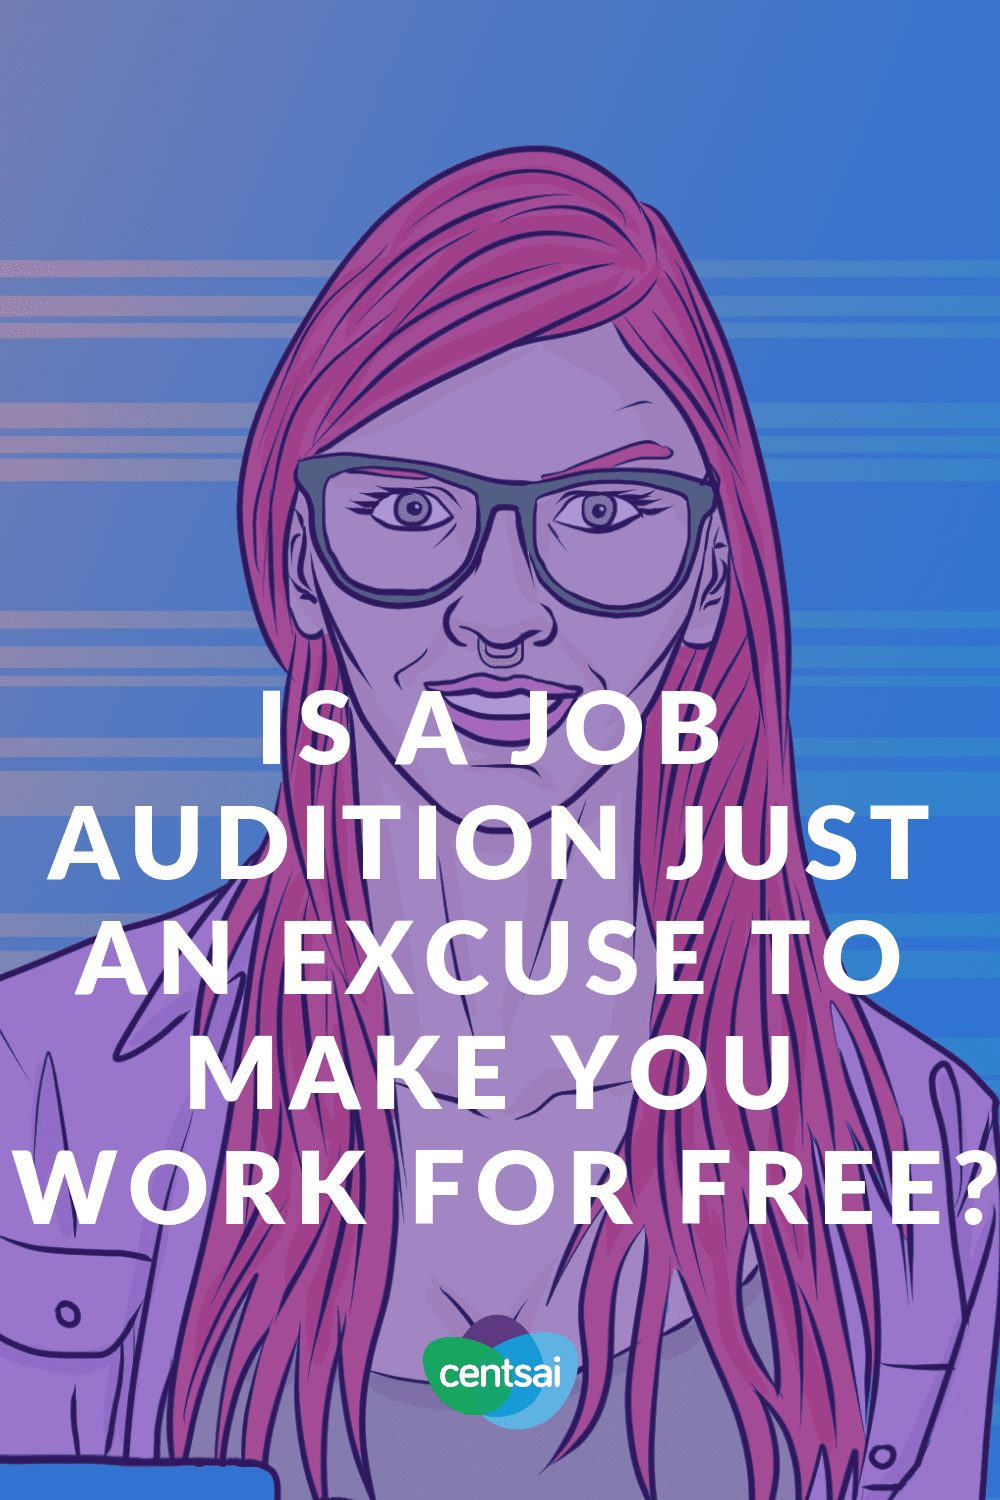 Is a Job Audition Just an Excuse To Make You Work For Free? You might have heard of an intensive form of job interview called a job audition. But what is a job audition, exactly? Read more to find out. #jobinterview #job